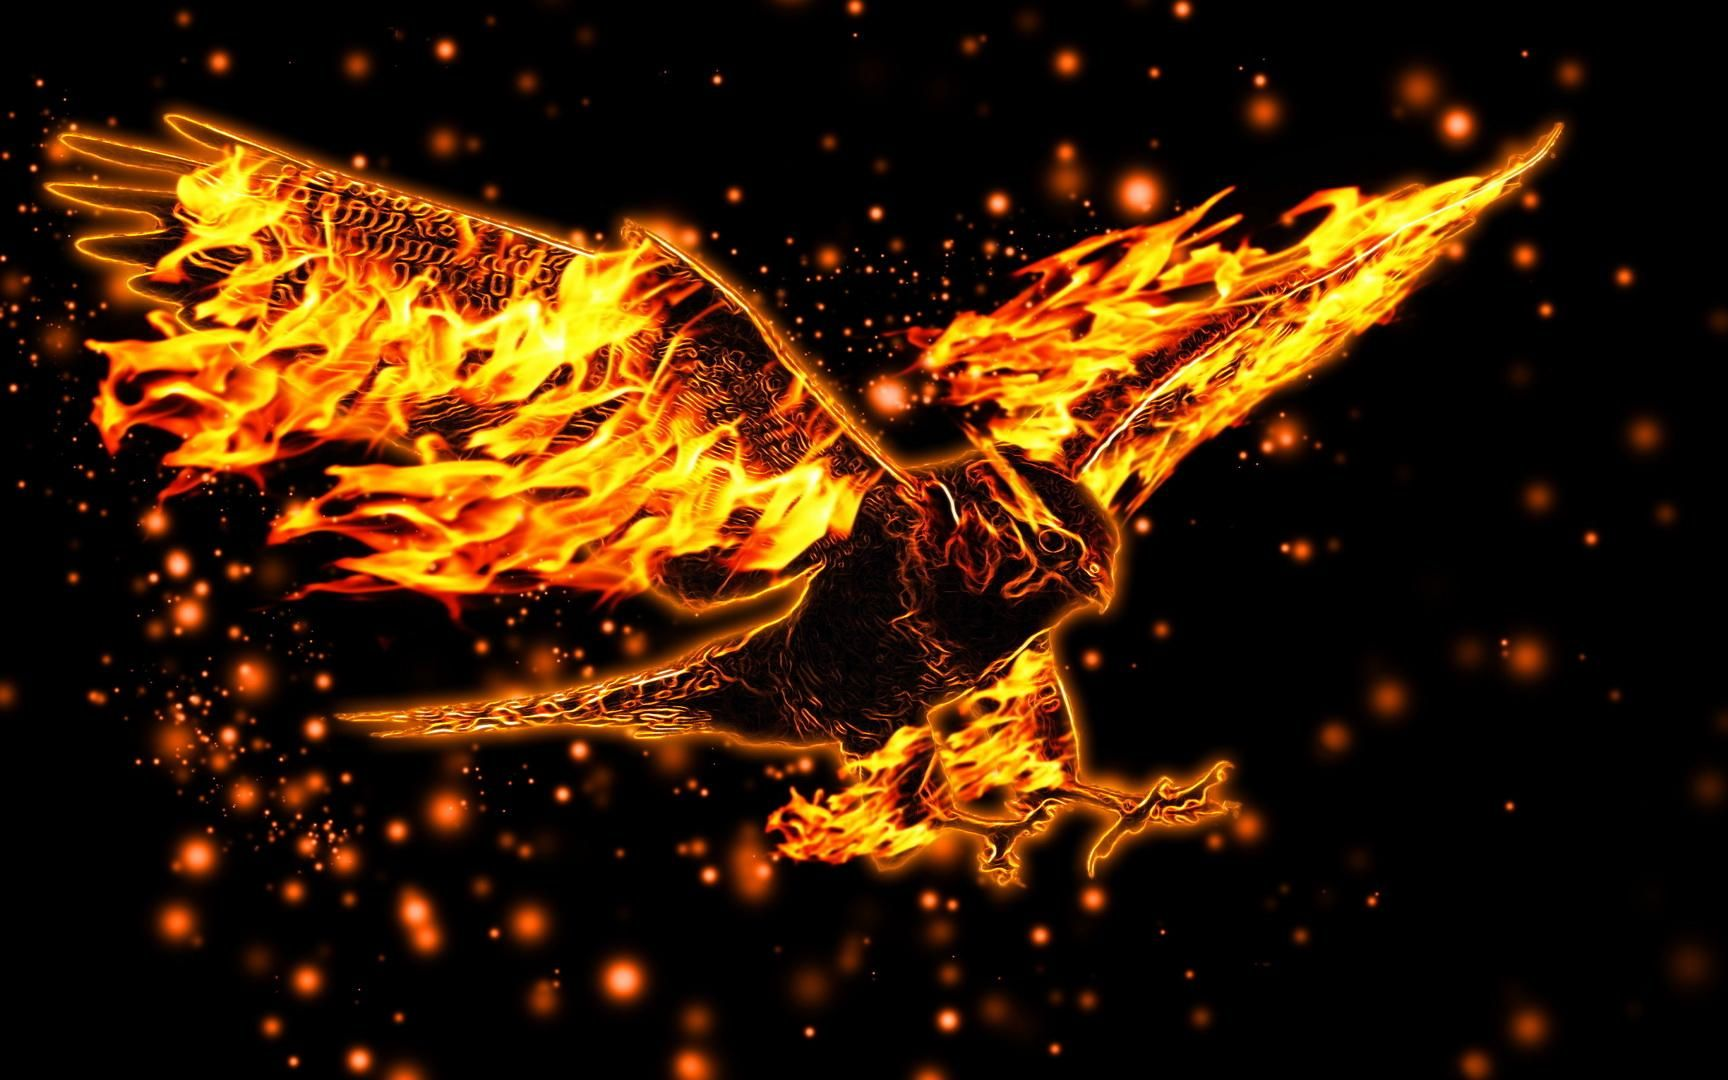 Awesome Blazing Eagle Eagle Wallpaper Angel Wallpaper Wallpaper Pictures